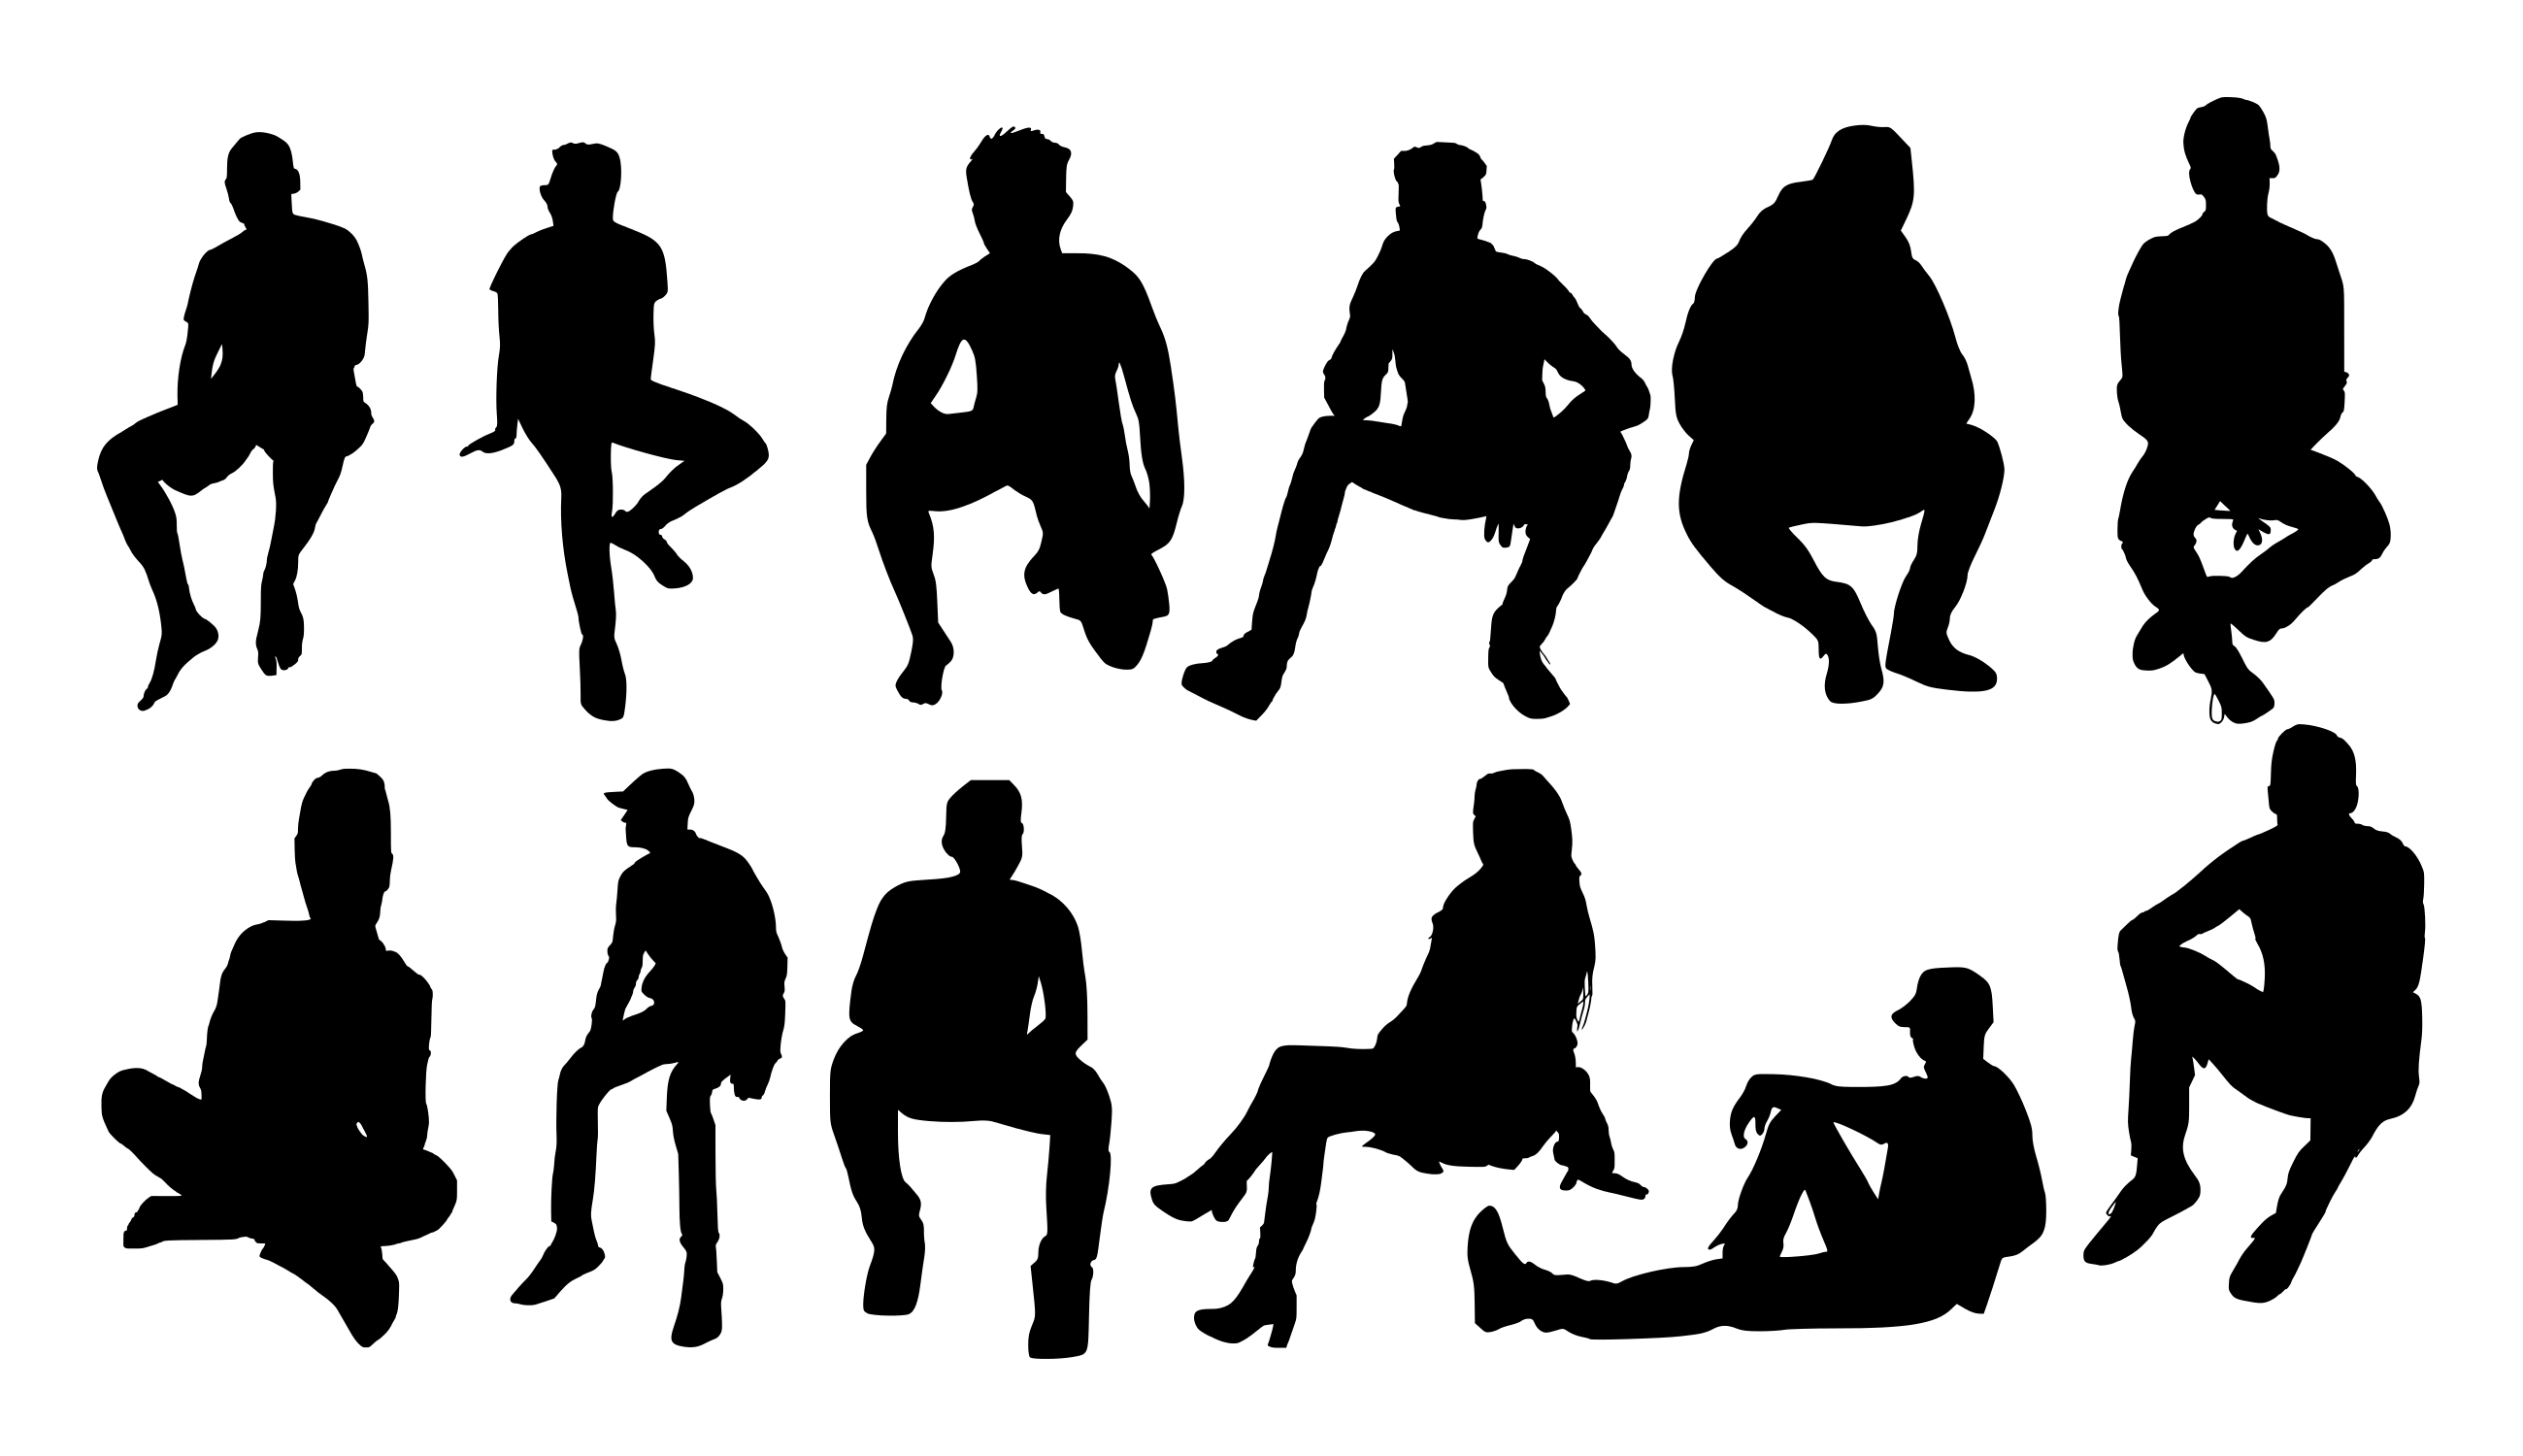 silhouette of a person sitting 12 people sitting silhouette png transp 384564 png sitting of person silhouette a